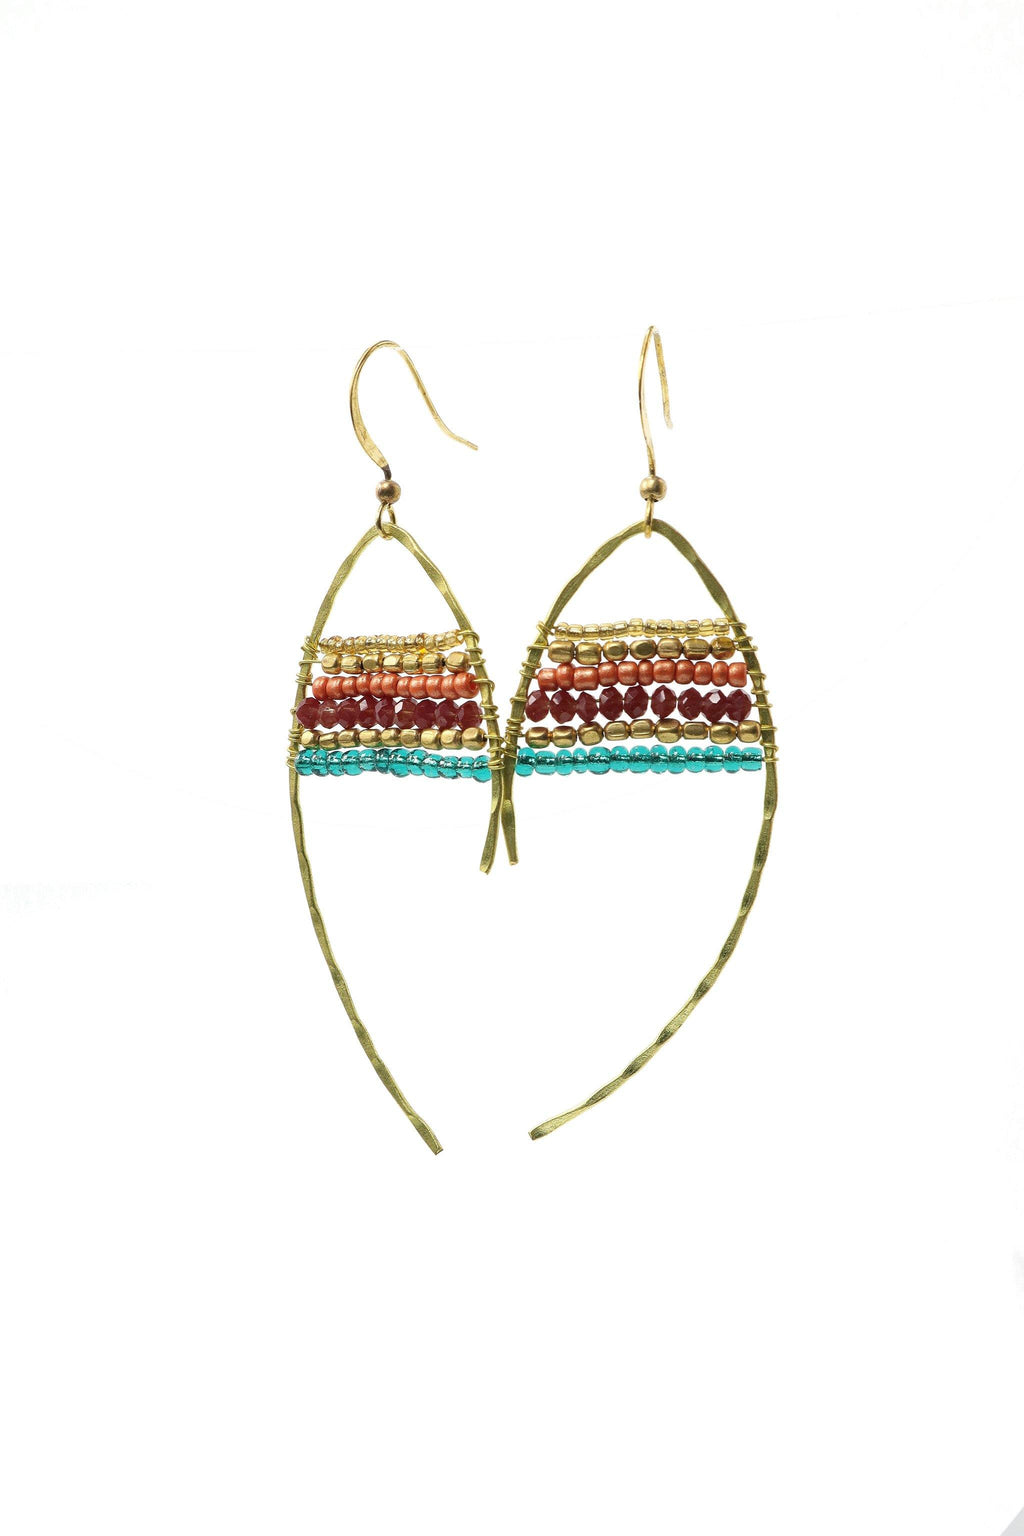 These are statement fish-shaped brass beaded earrings in shades of gold, burgundy, pink and turquoise.  They feature brass and acrylic and glass beads. They are handmade with love in Thailand.   This is a Fairtrade Product.